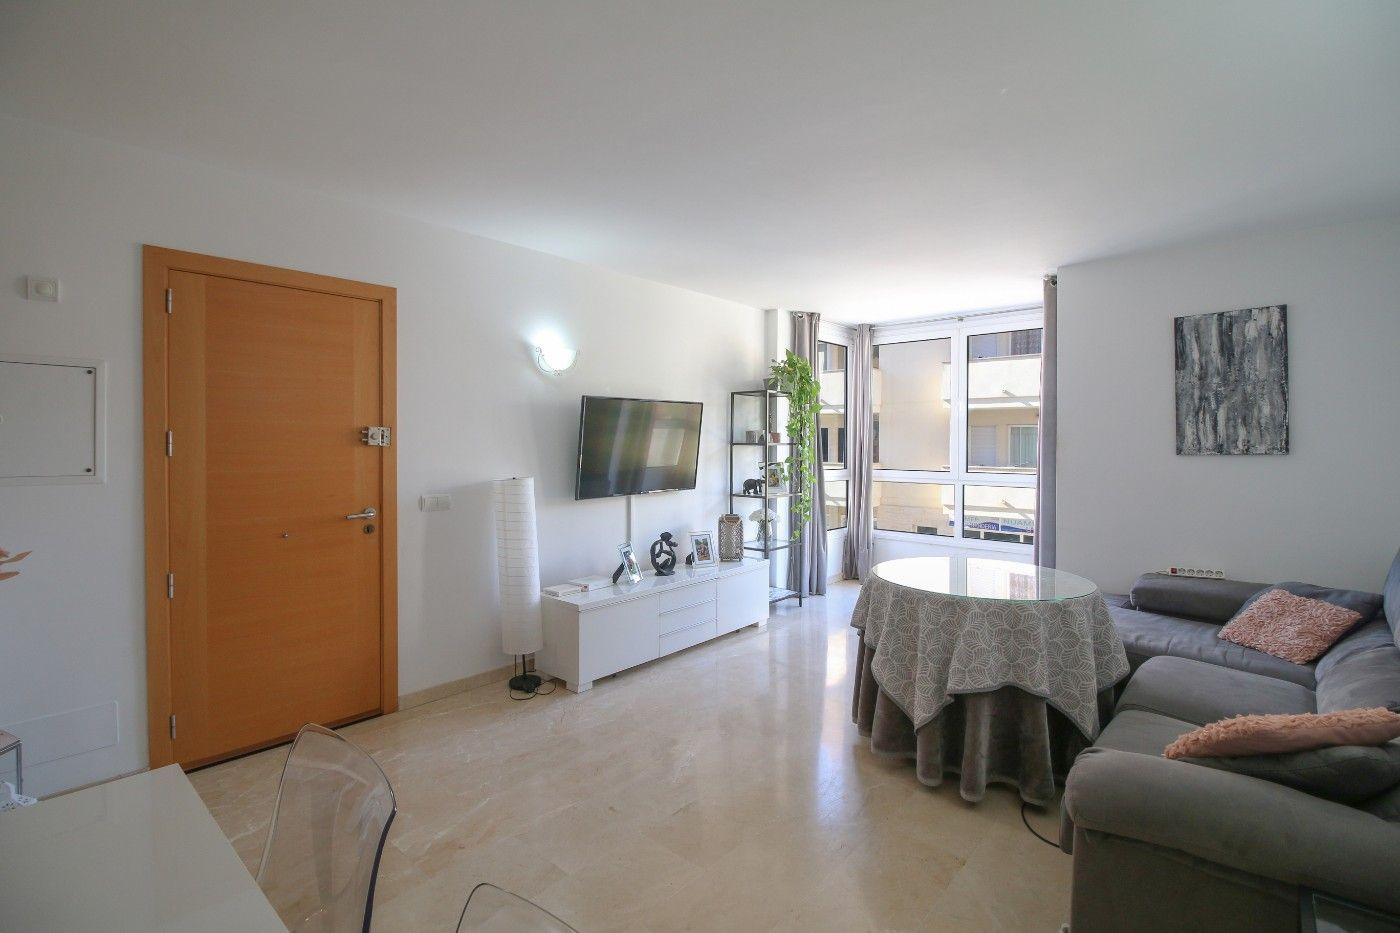 Apartment  Carrer vicenç buades. Piso en port de pollença